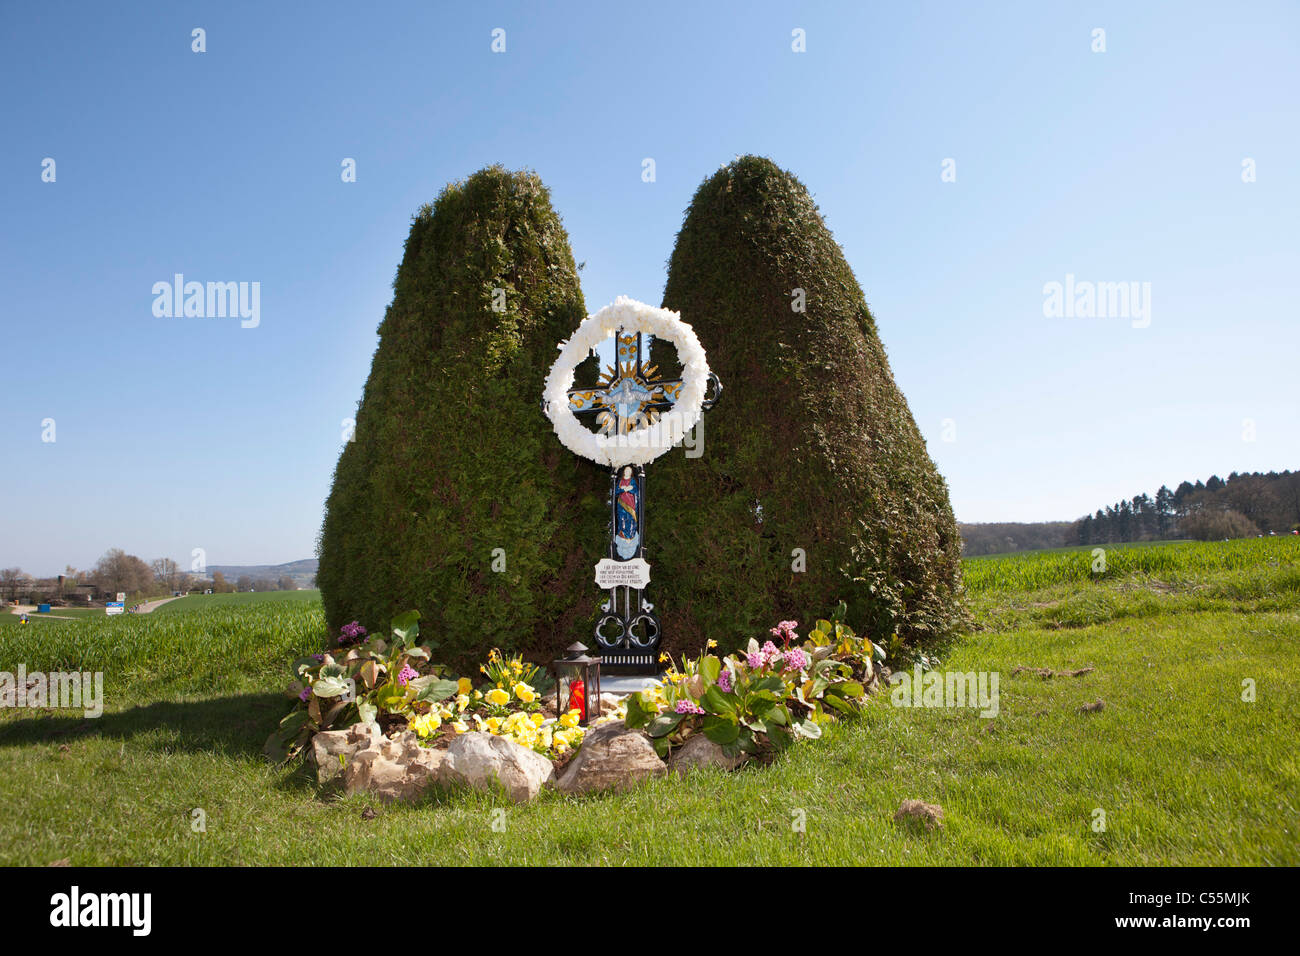 The Netherlands, Gulpen. Statue of Jesus Christ along the road. - Stock Image